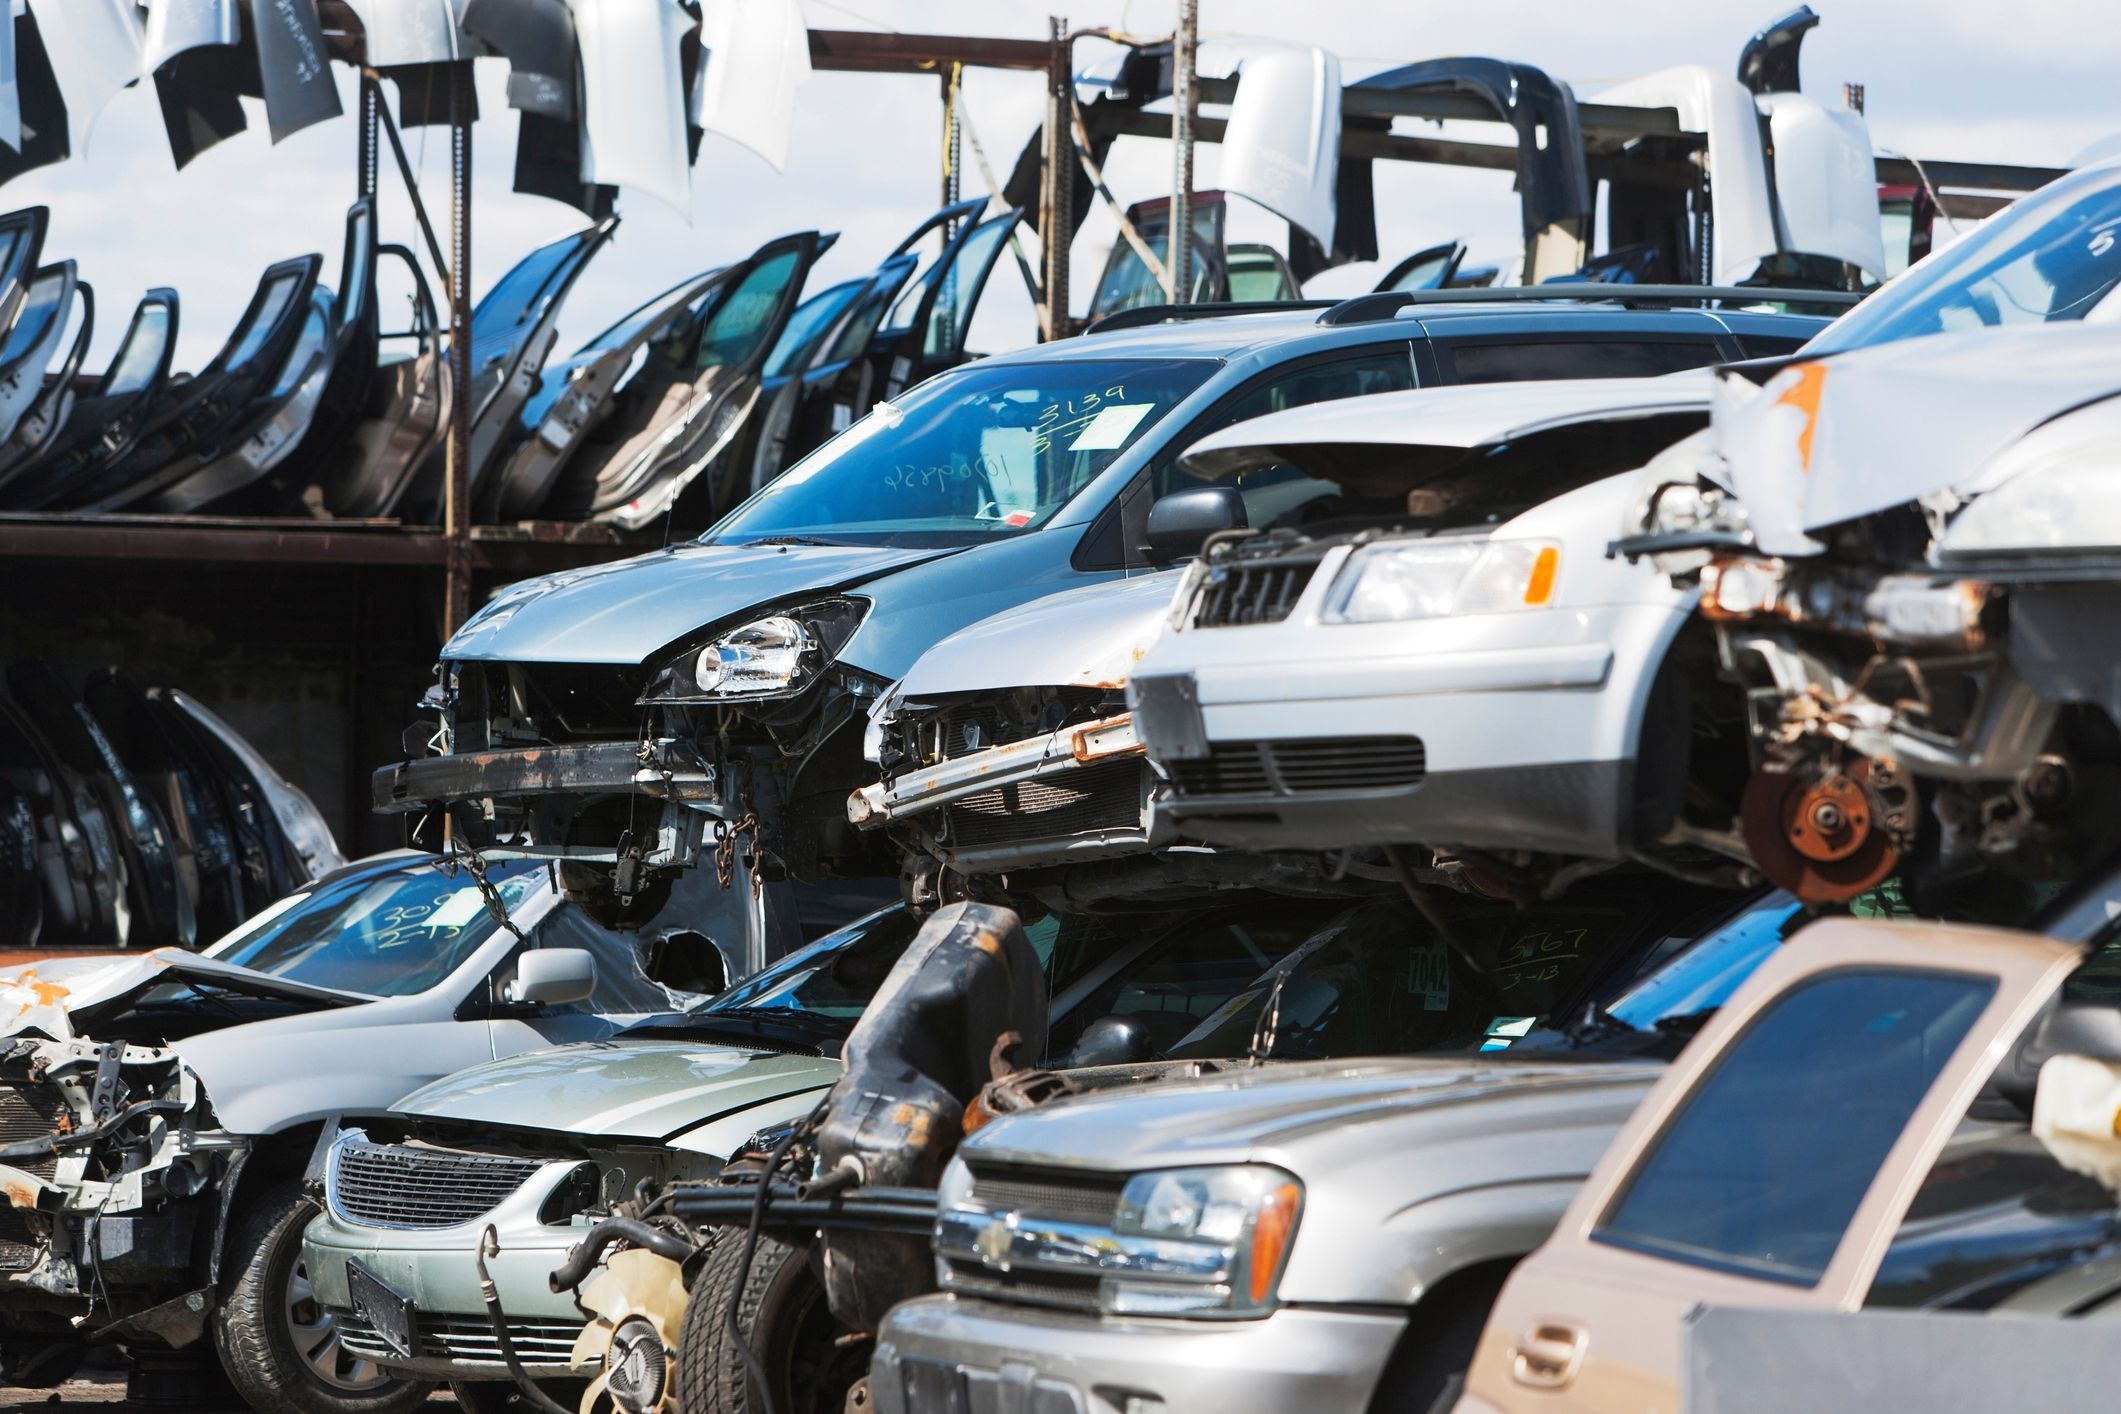 Auto Recycling Recent Trends, Statistics, Opportunities, and ...